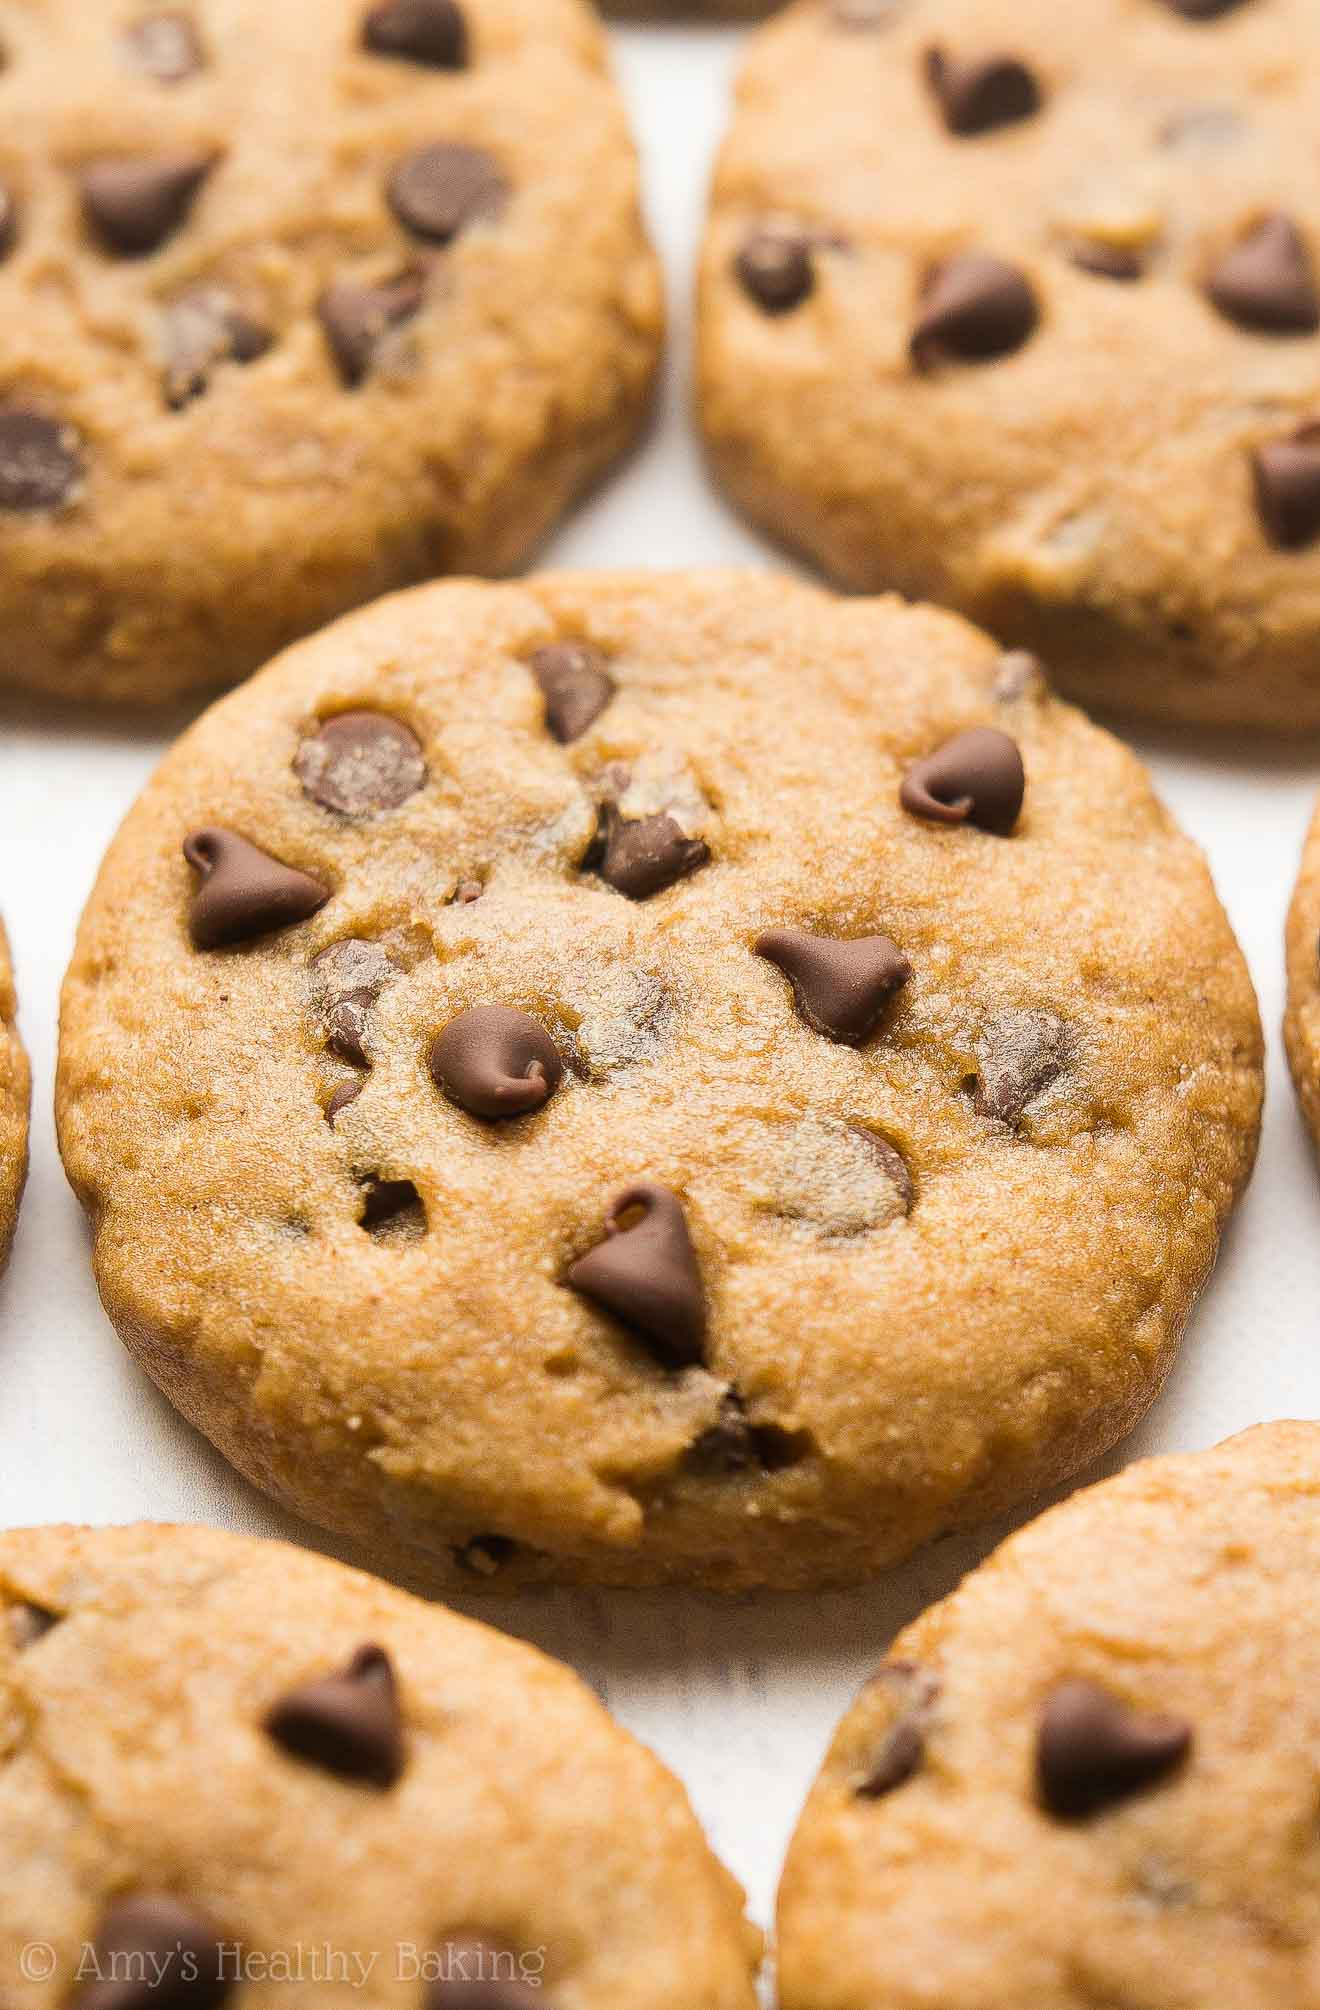 Chocolate Chip Cookies Recipe Healthy  Healthy Banana Chocolate Chip Cookies Recipe Video